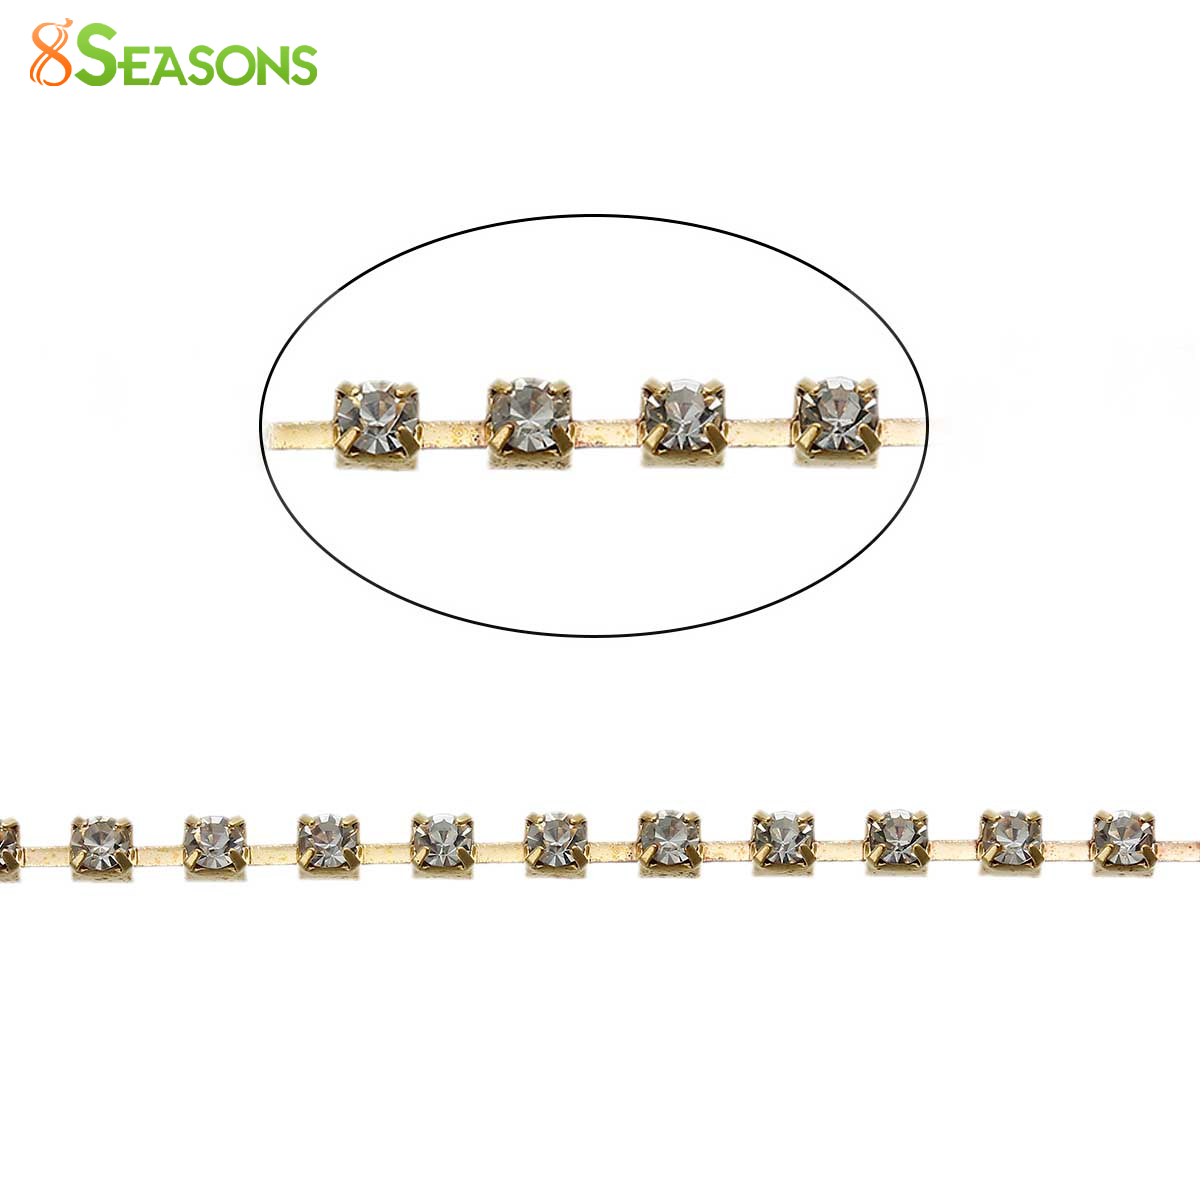 "8SEASONS Zinc Based Alloy Trims Close <font><b>Cup</b></font> Chain Findings <font><b>Gold</b></font> Plated Square Clear Rhinestone 3x3mm( 1/8""x1/8""), 3 <font><b>M</b></font> 2016 new"